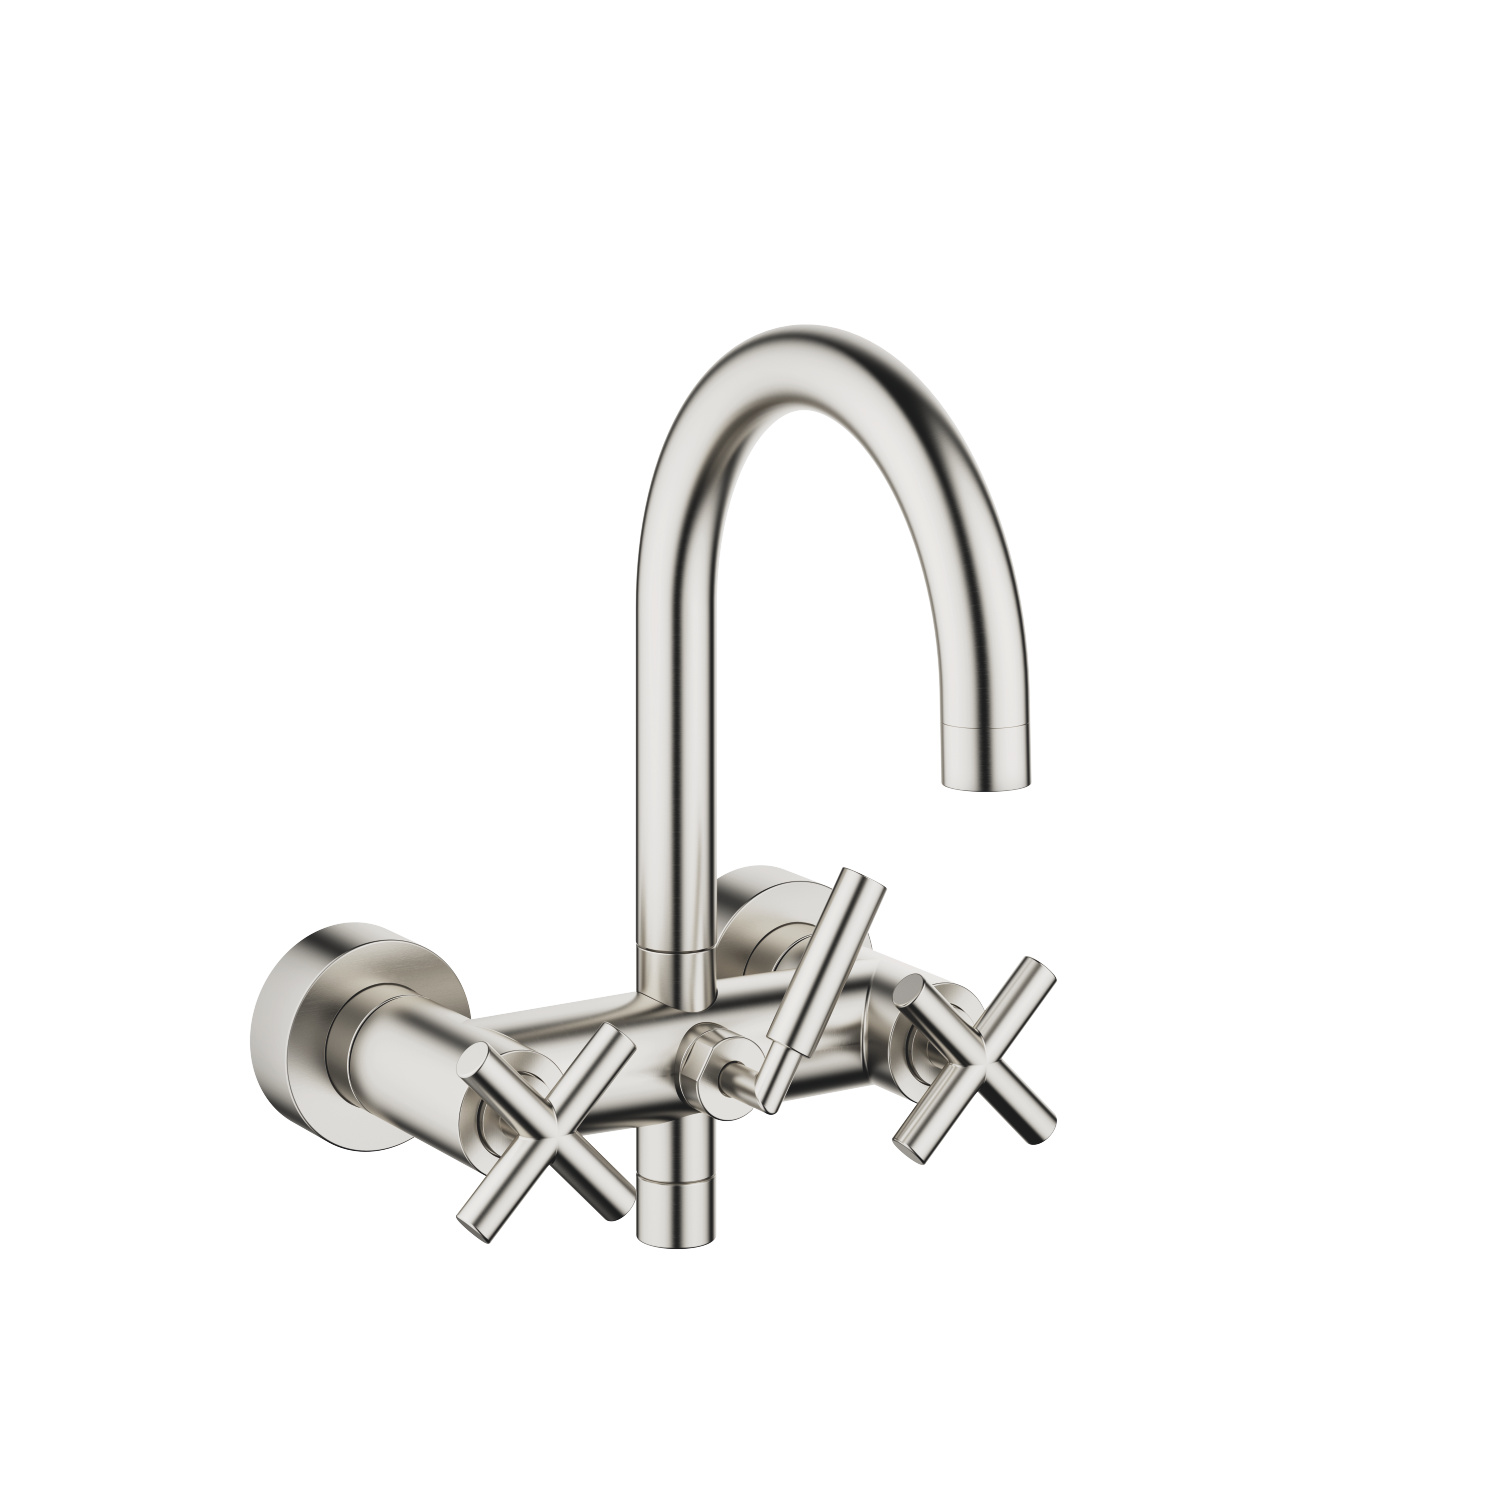 Bath mixer for wall mounting - platinum matt